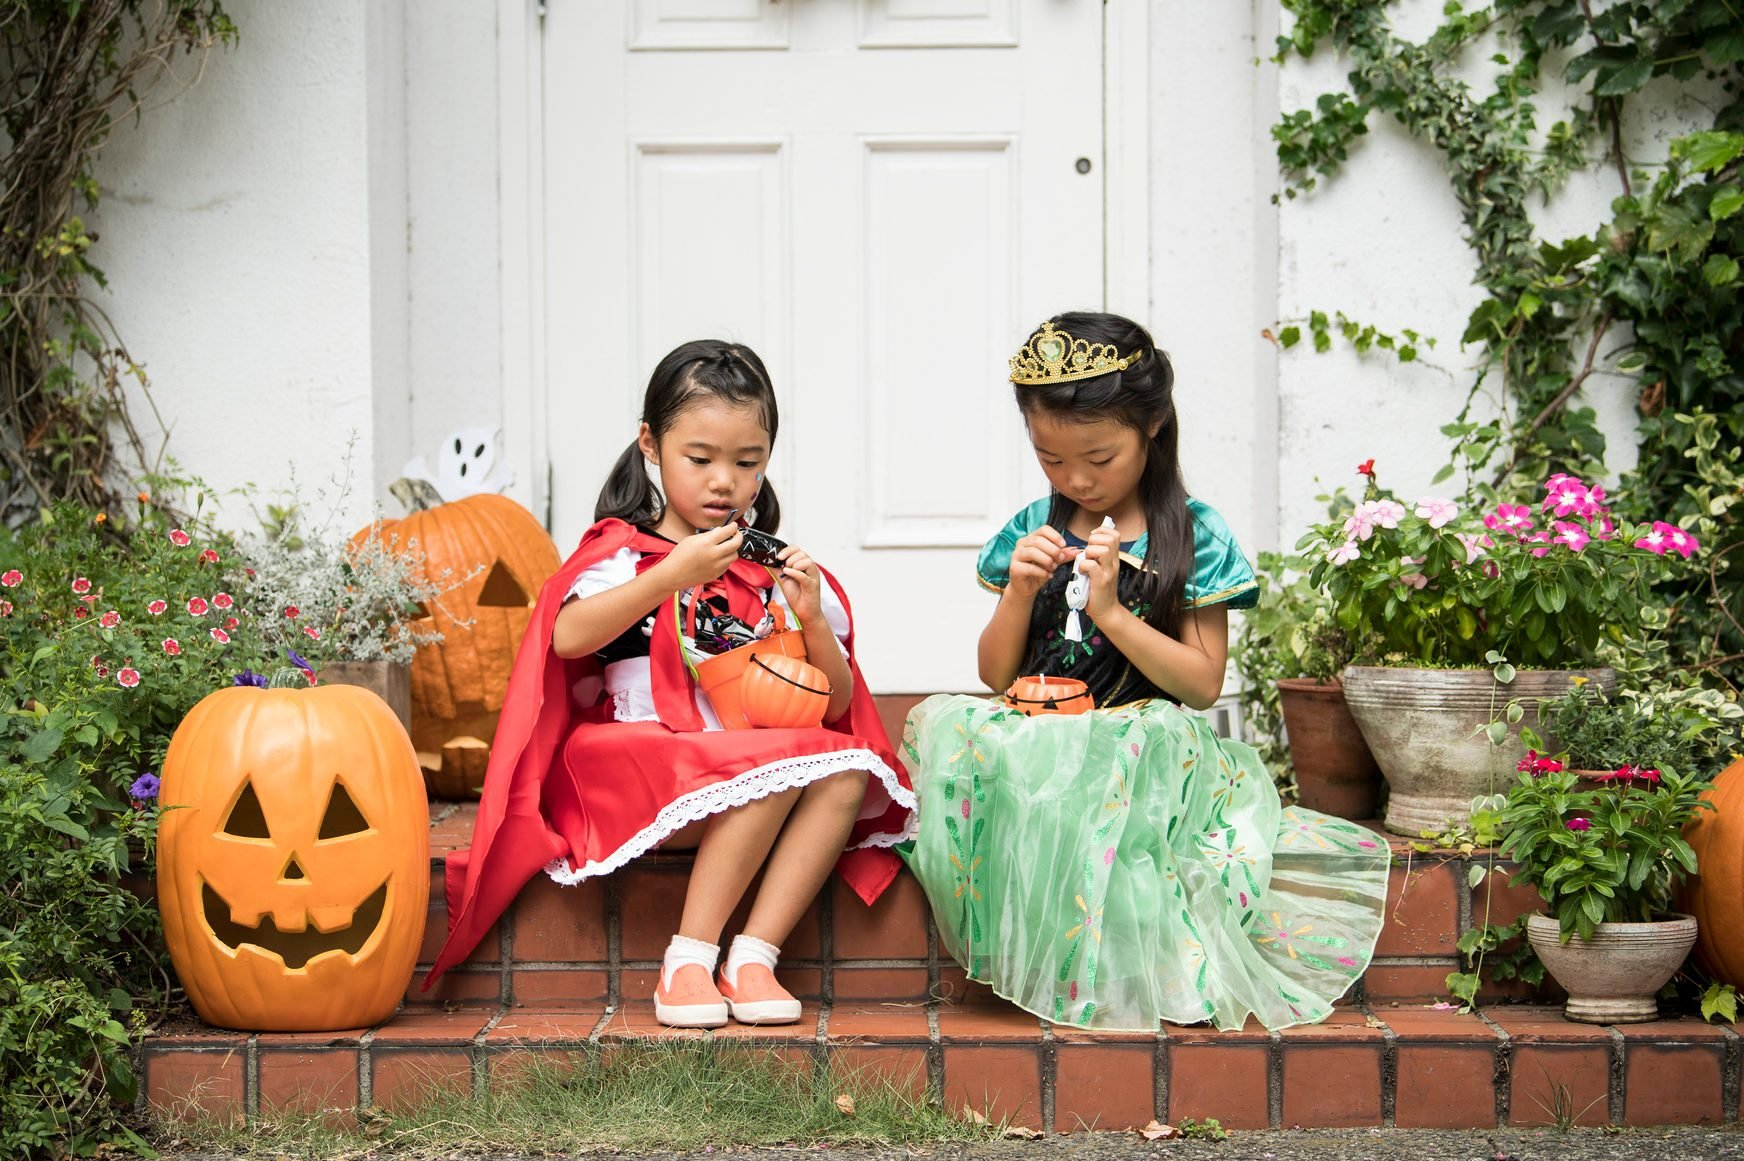 Sitting in front of the house girls are eating sweets.